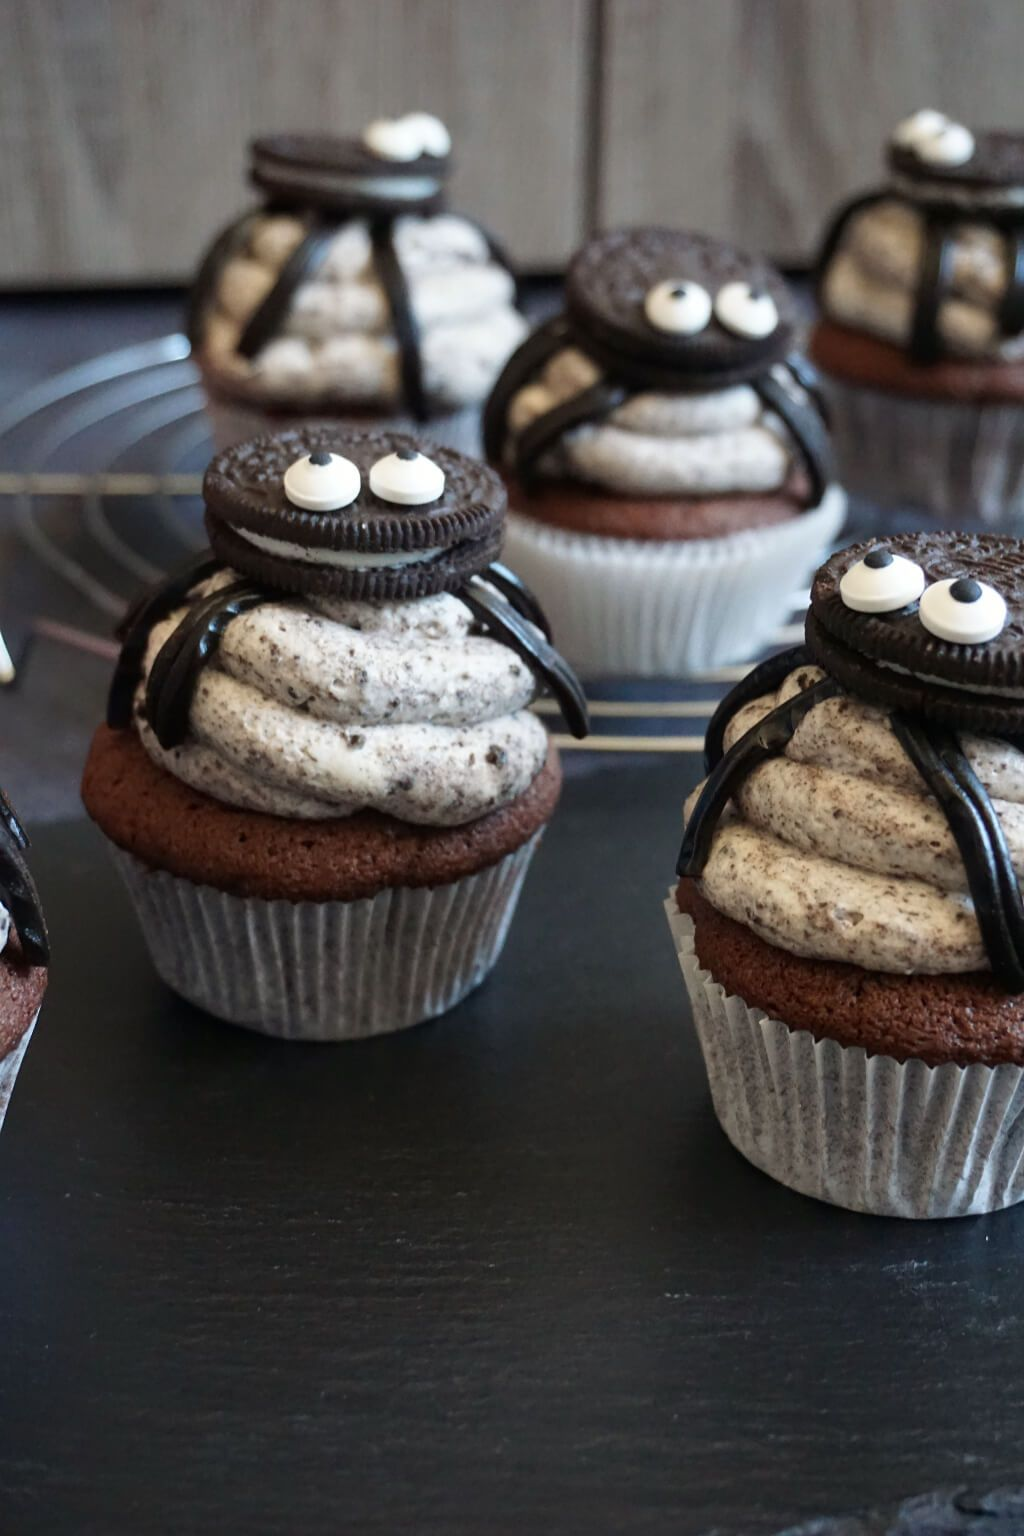 Spinnen-Oreo-Cupcakes - passend zu Halloween | Backen, Halloween und ...